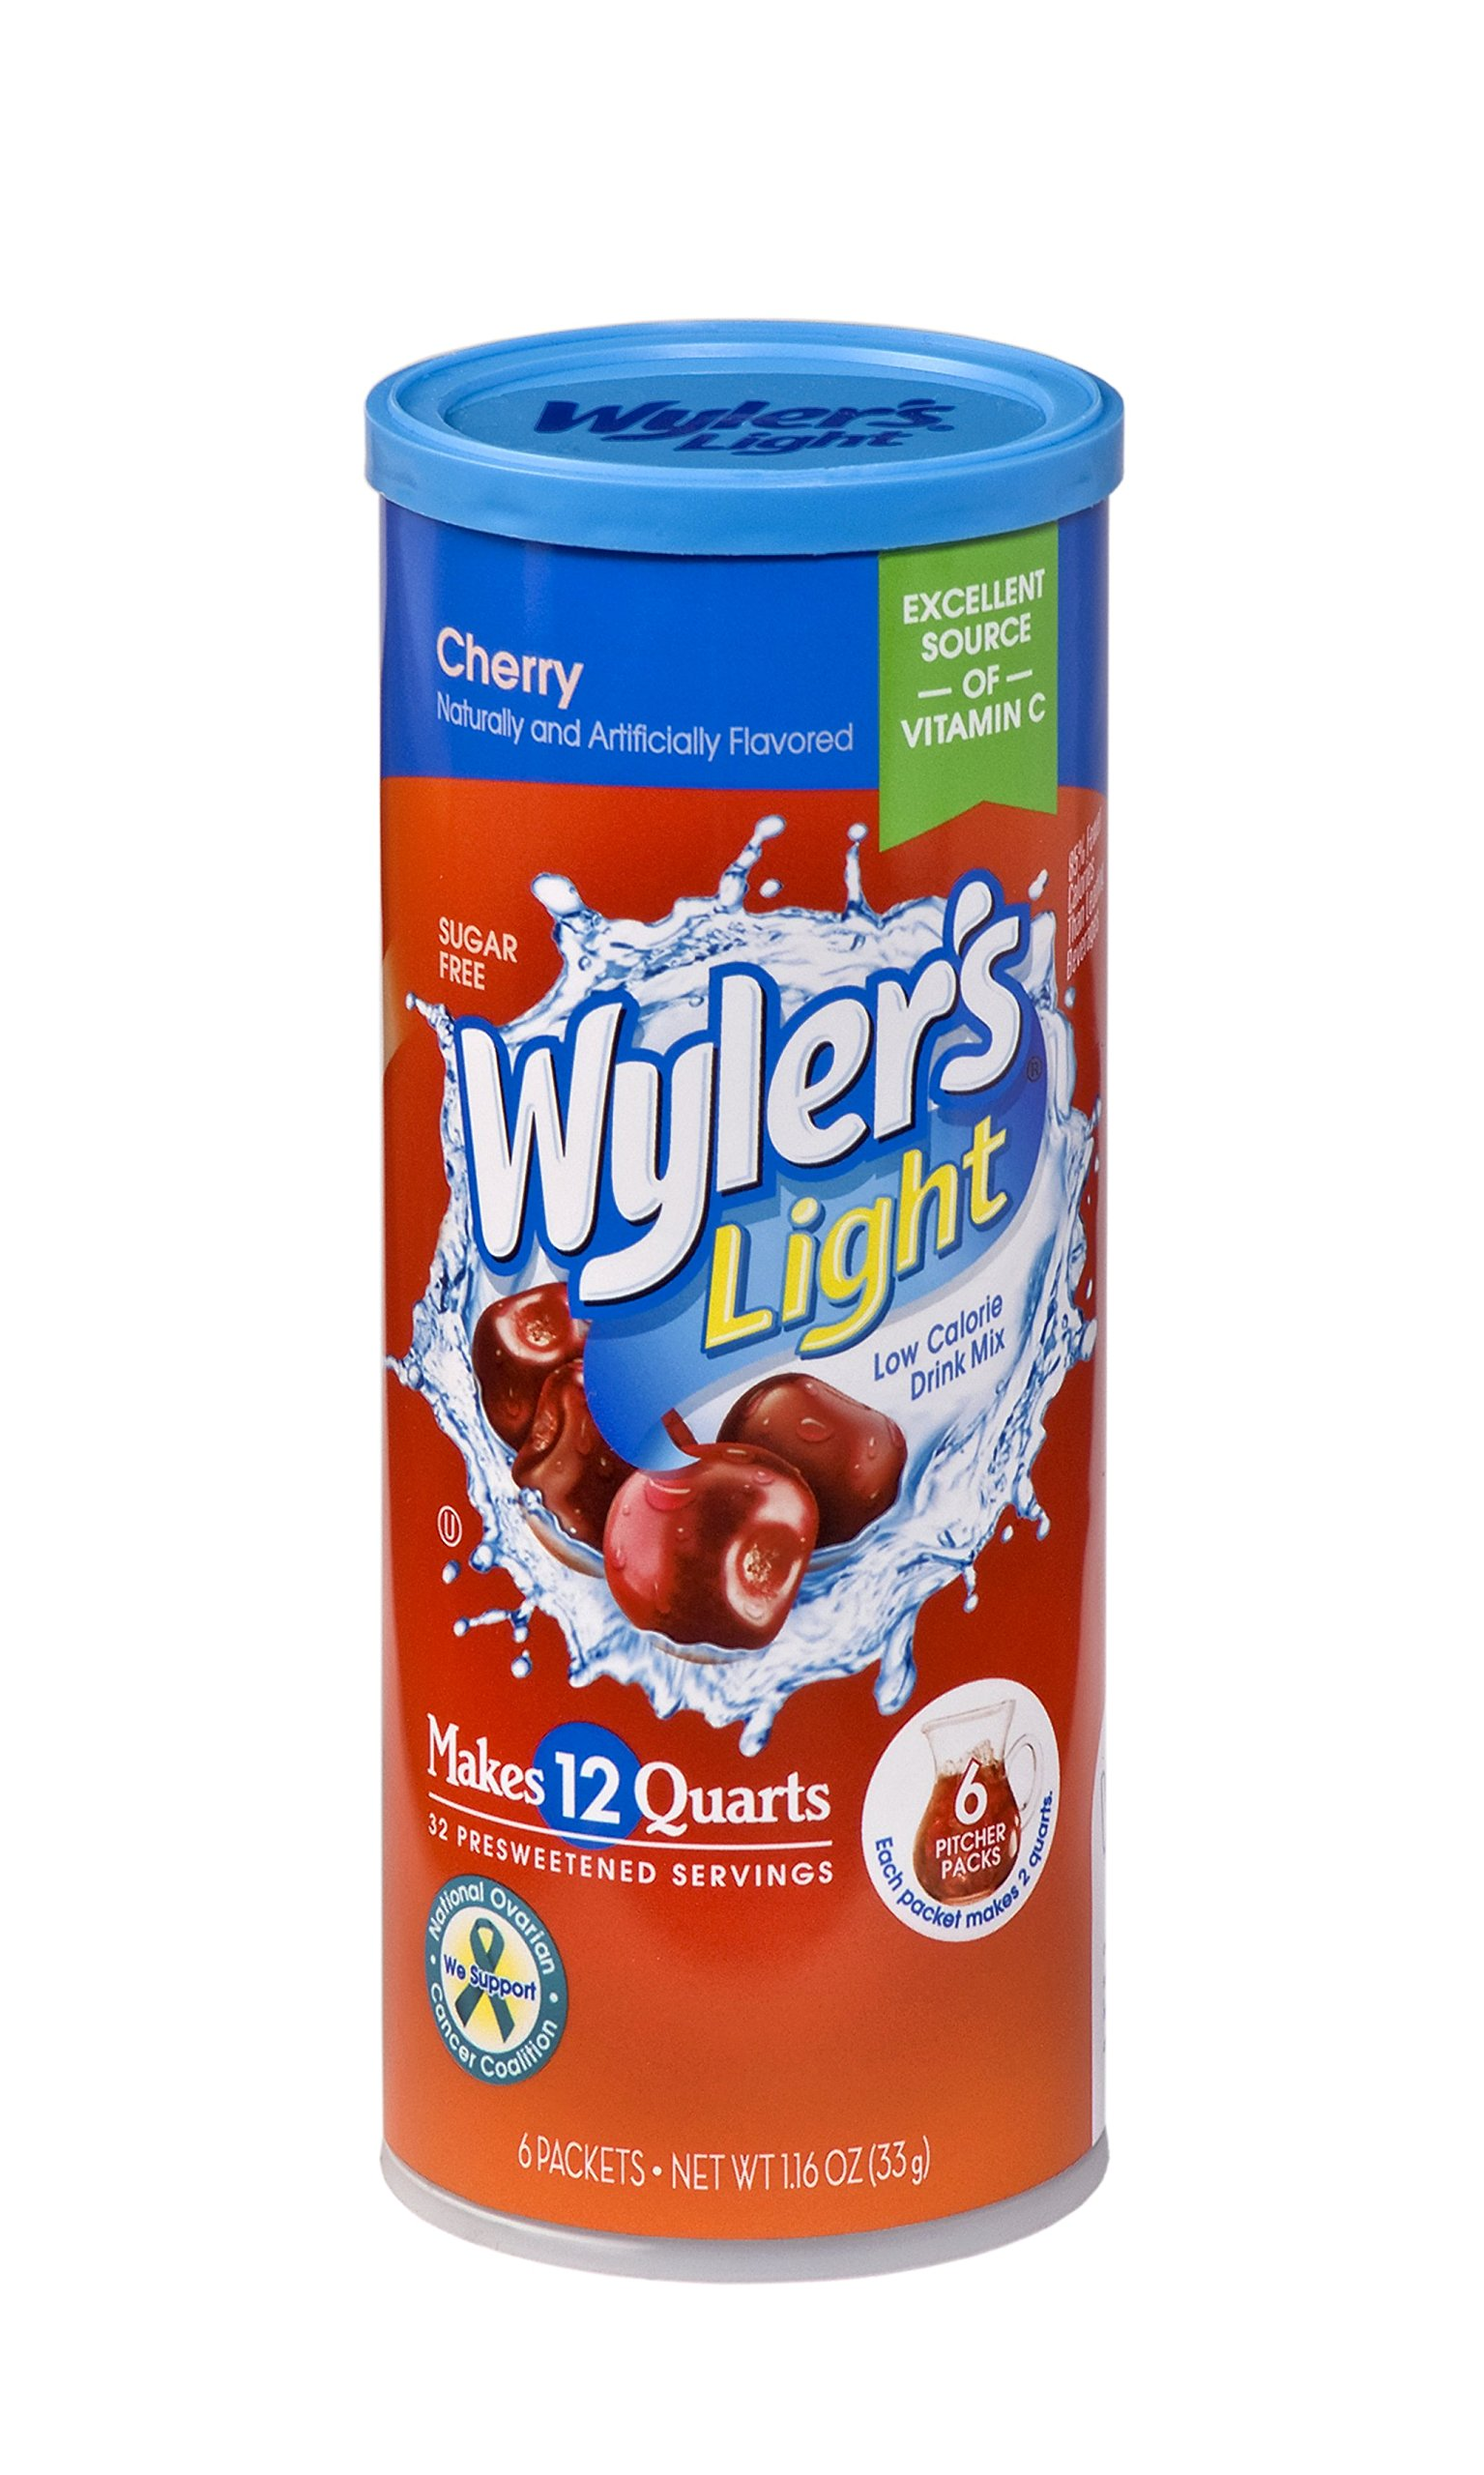 Wyler's Light Canister Drink Mix - Cherry Water Powder Enhancer Canister (6 Canisters that make 12 Quarts Each)